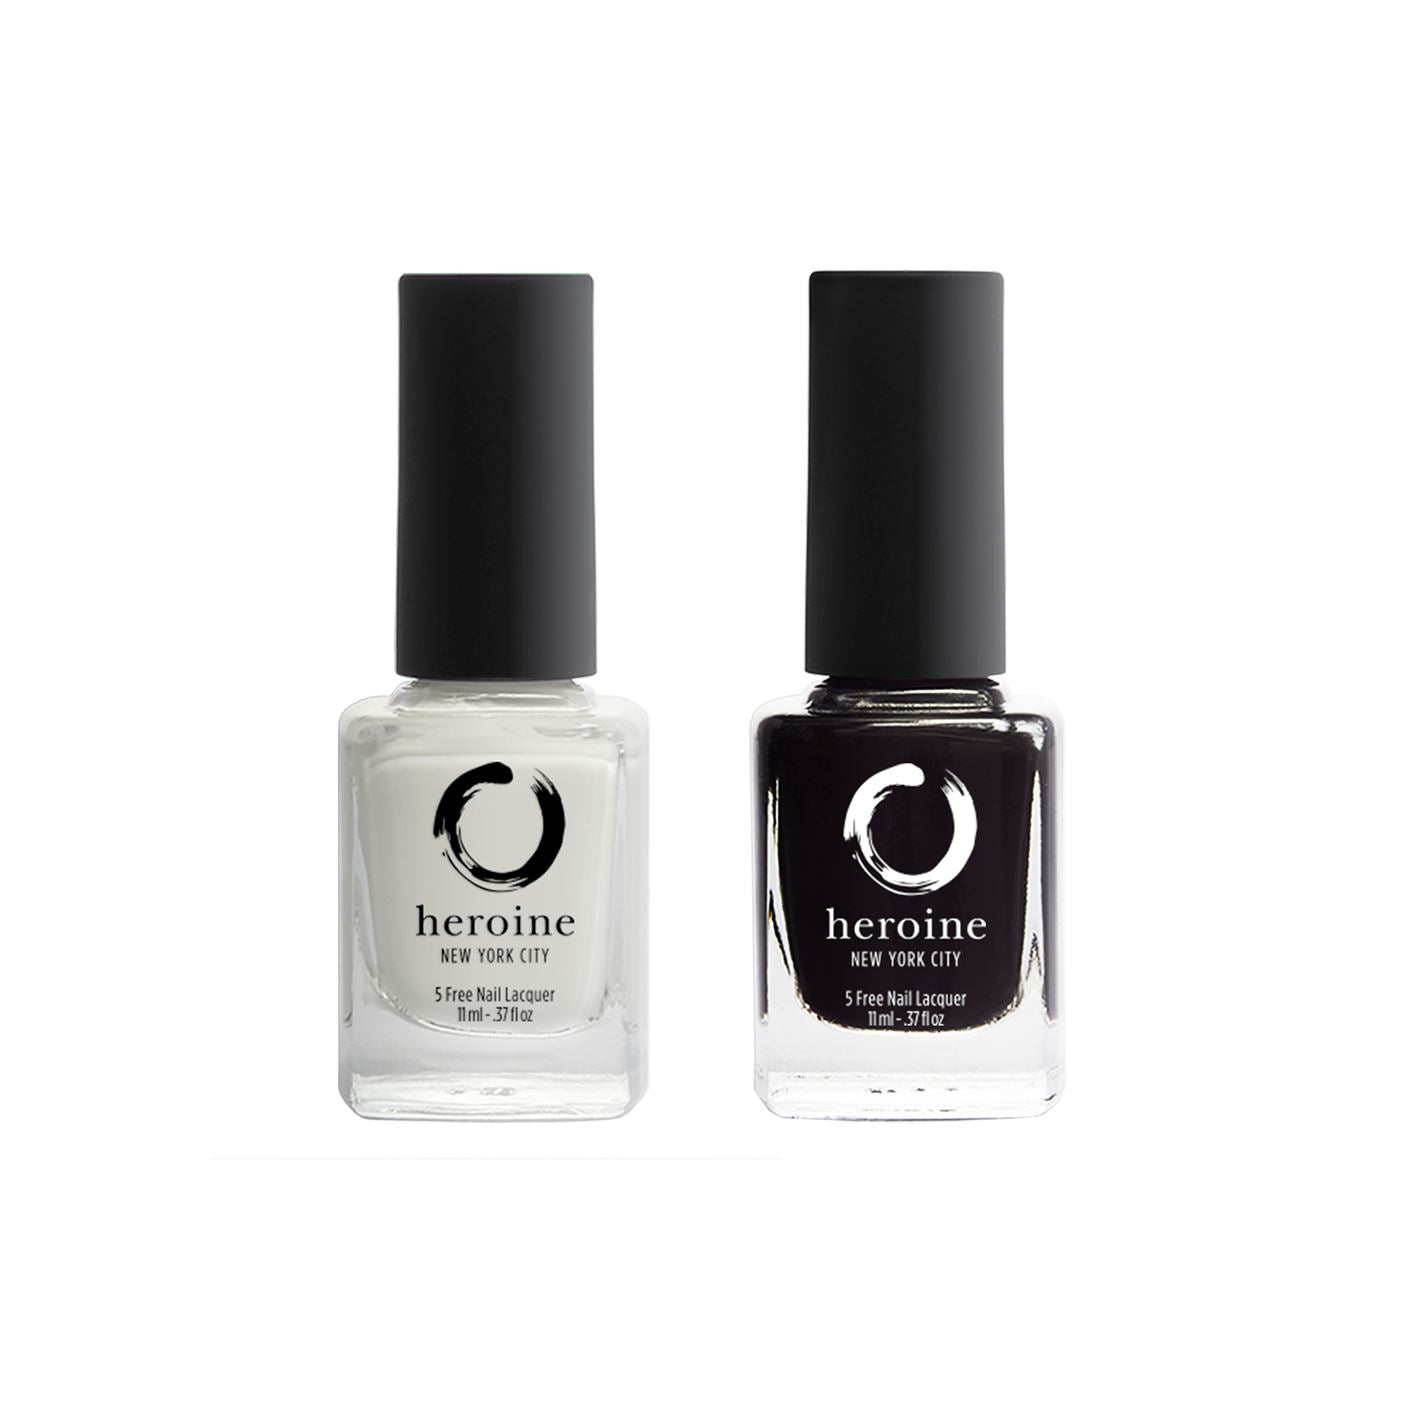 THE ESSENTIALS Nail Polish heroine The Essentials Duo